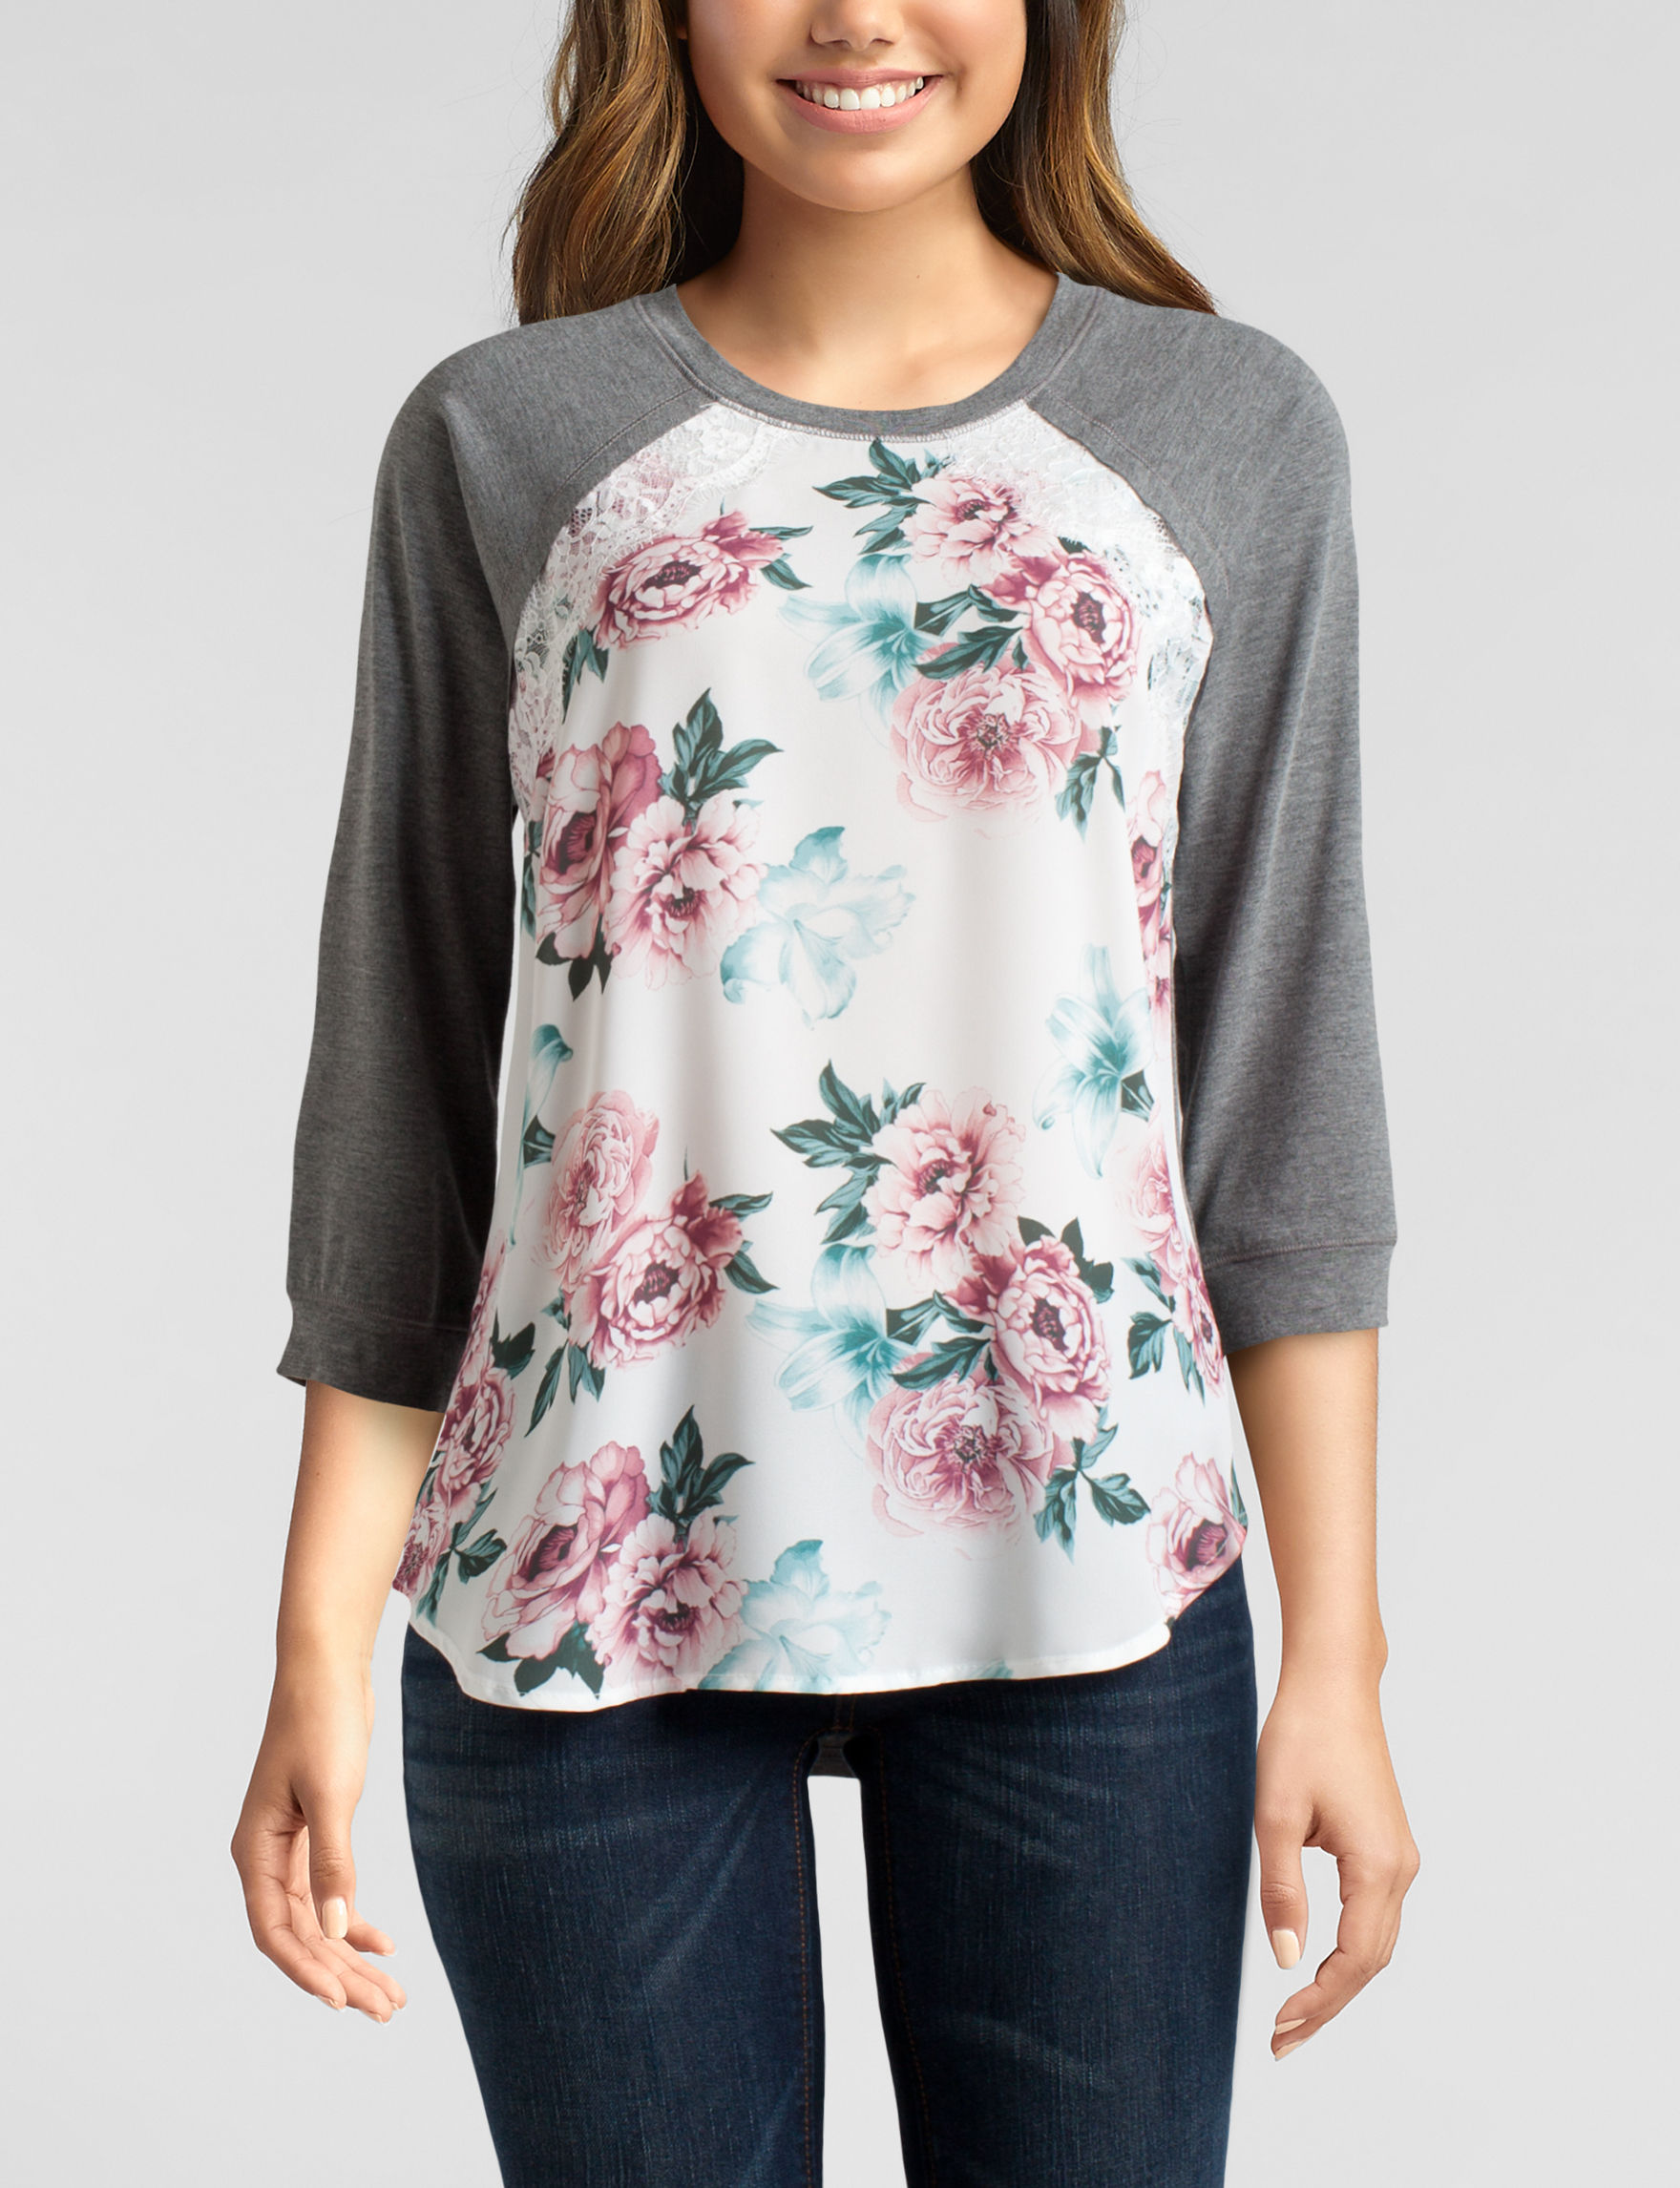 Justify Ivory Shirts & Blouses